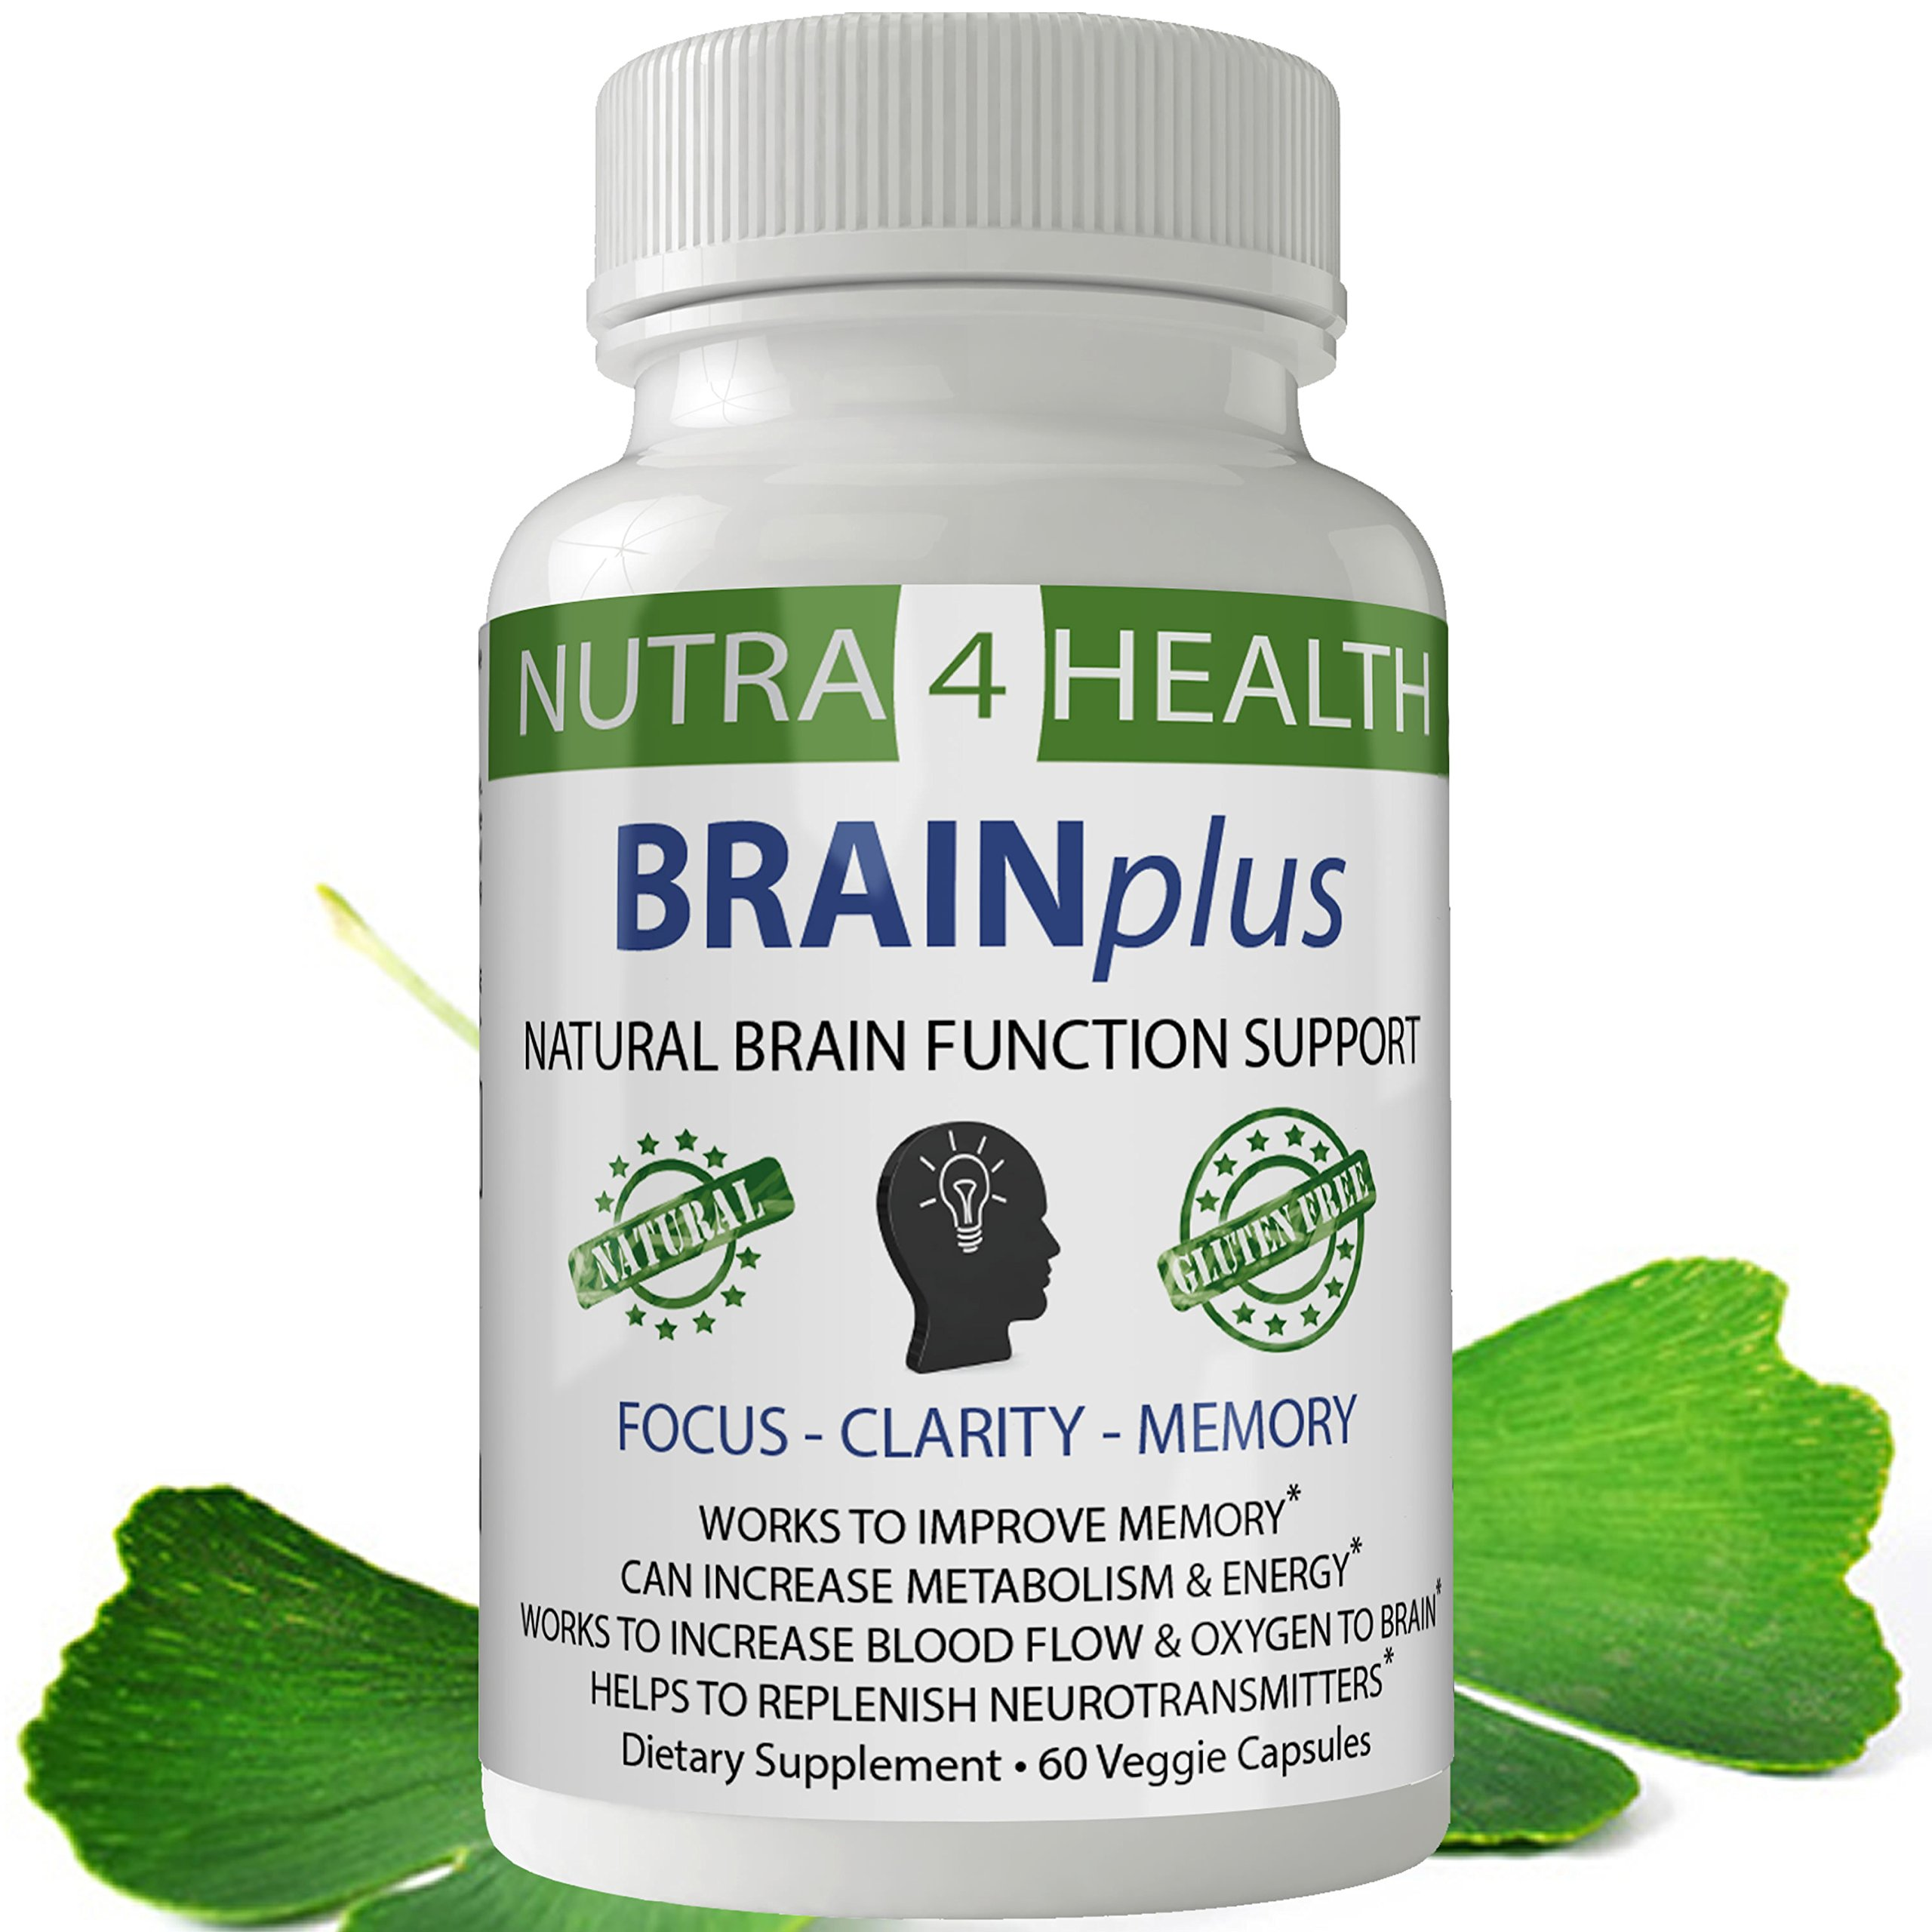 BRAINplus - Brain IQ Plus Capsules for Brain Plus IQ Original from nutra4health, Brain Booster, Brain Supplement for FOCUS, CLARITY and MEMORY with BACOPA, DMAE & PHOSPHATIDYLCHOLINE